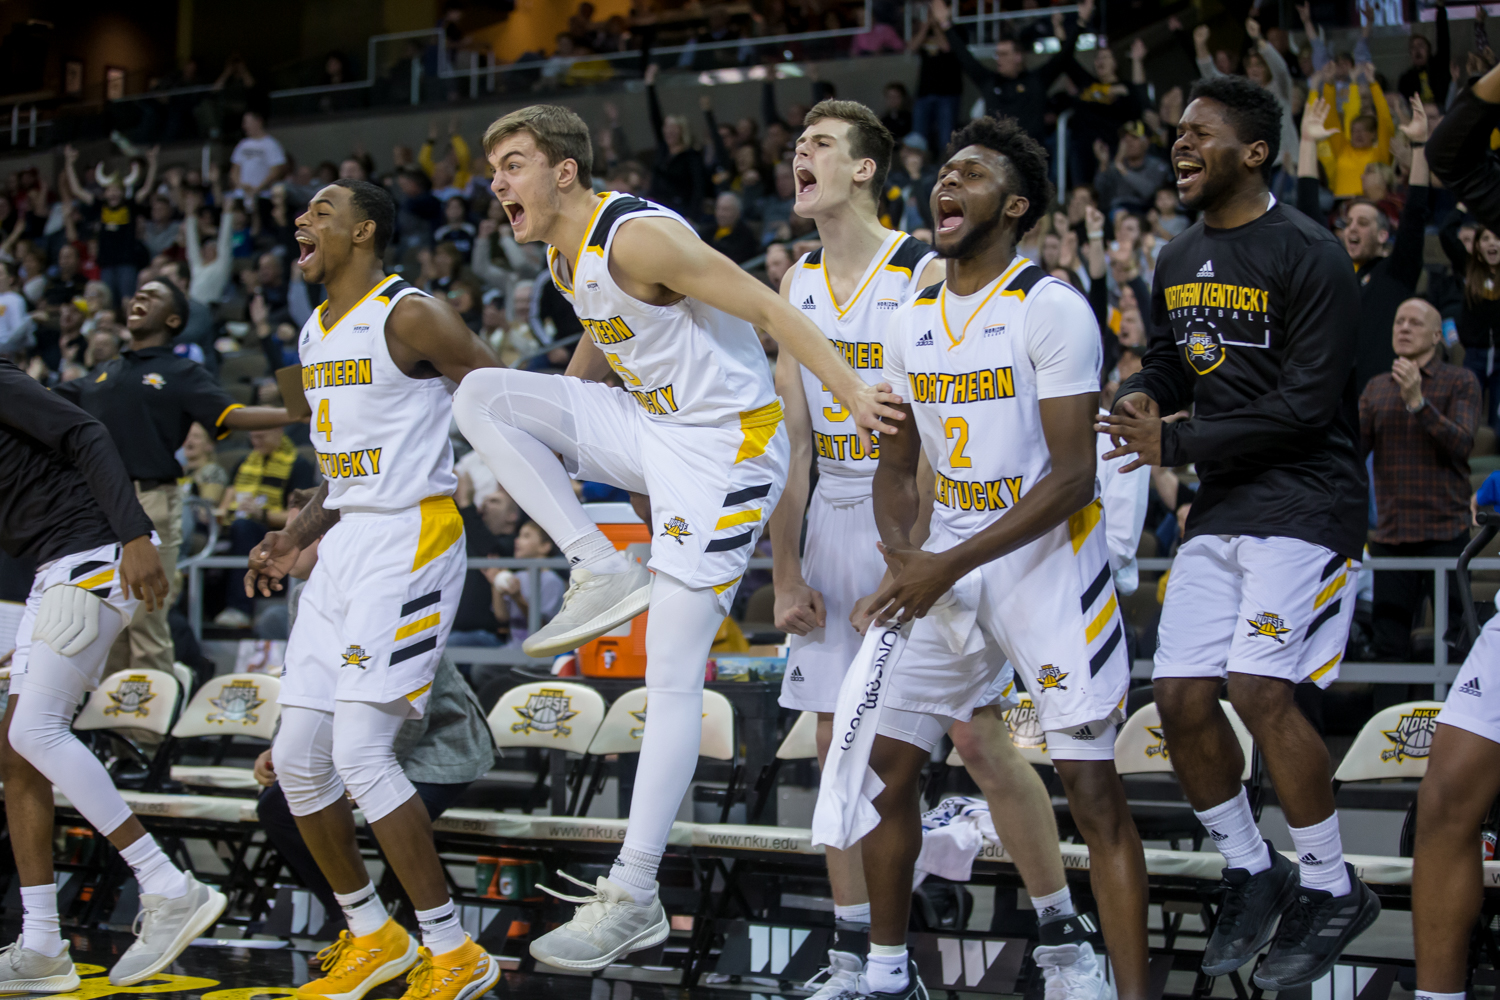 NKU players react after a play during the game against Miami University. The Norse defeated the RedHawks 72-66.